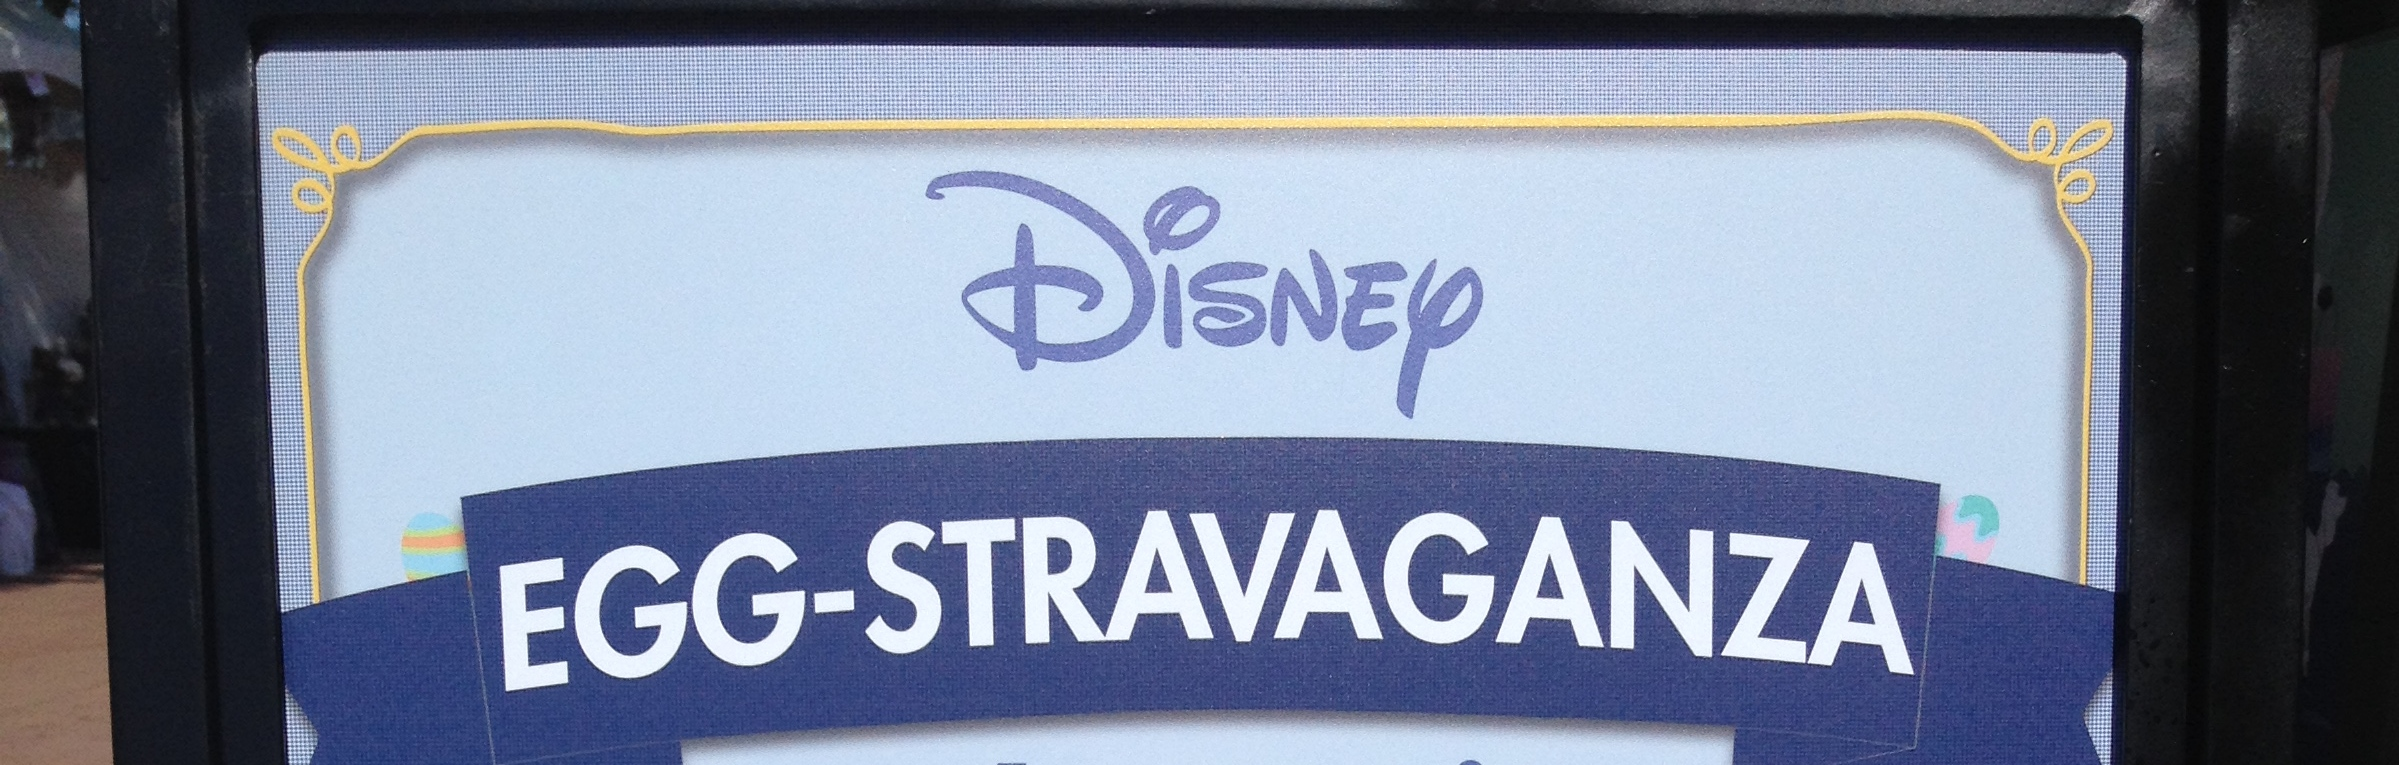 Disney Egg-stravaganza 2015 at Epcot